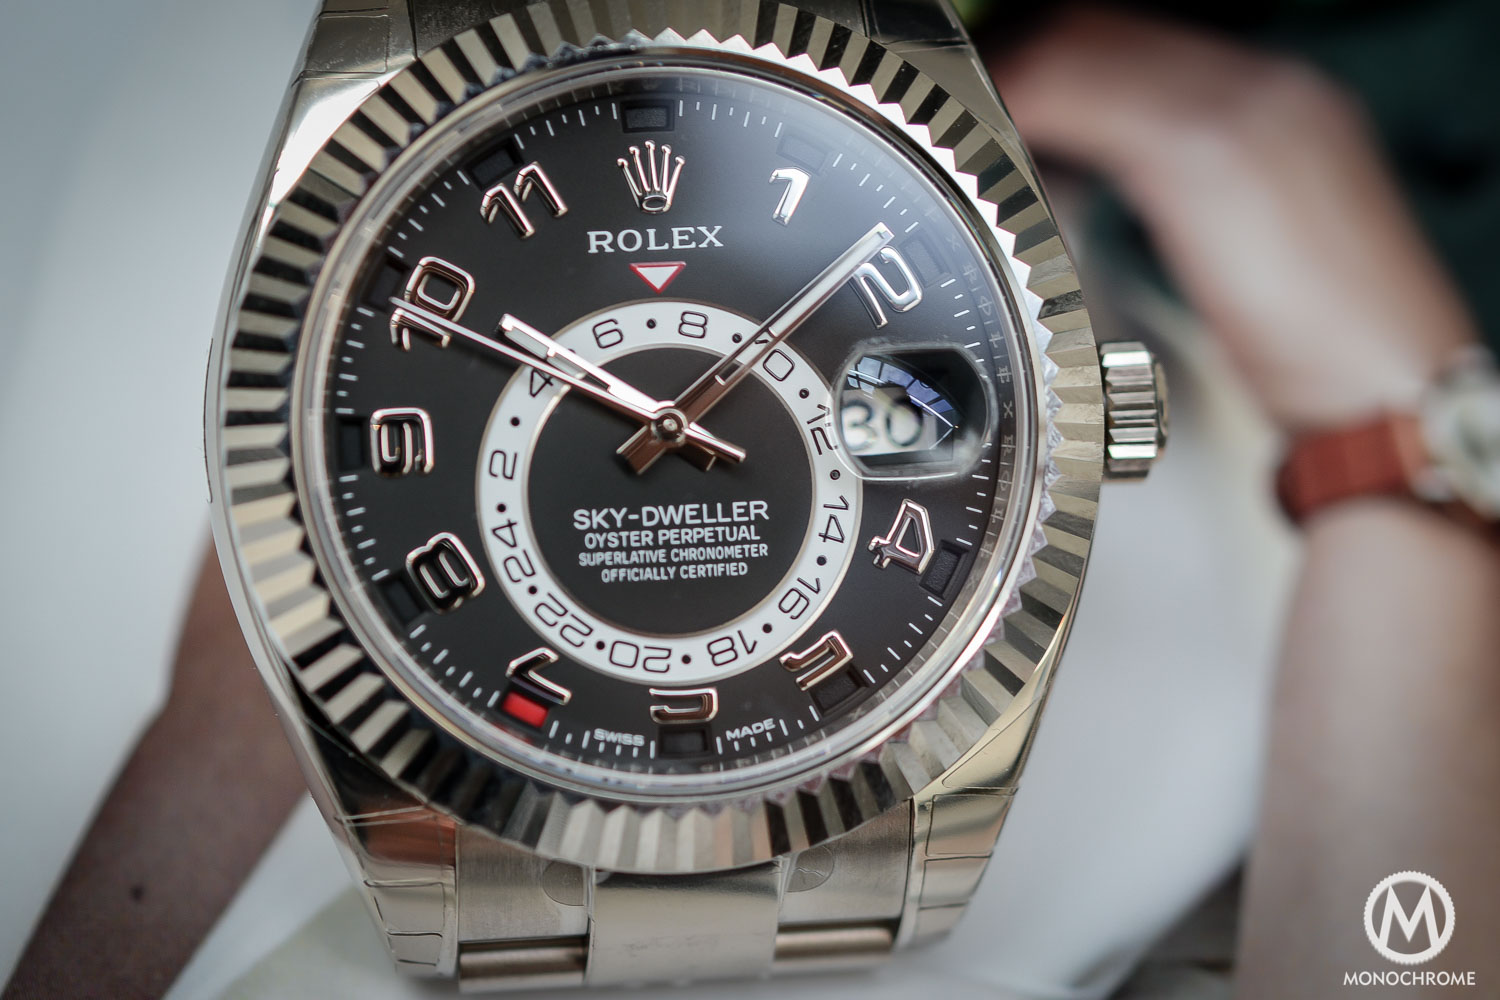 Rolex Sky-Dweller Review - dial and hands - white gold black dial